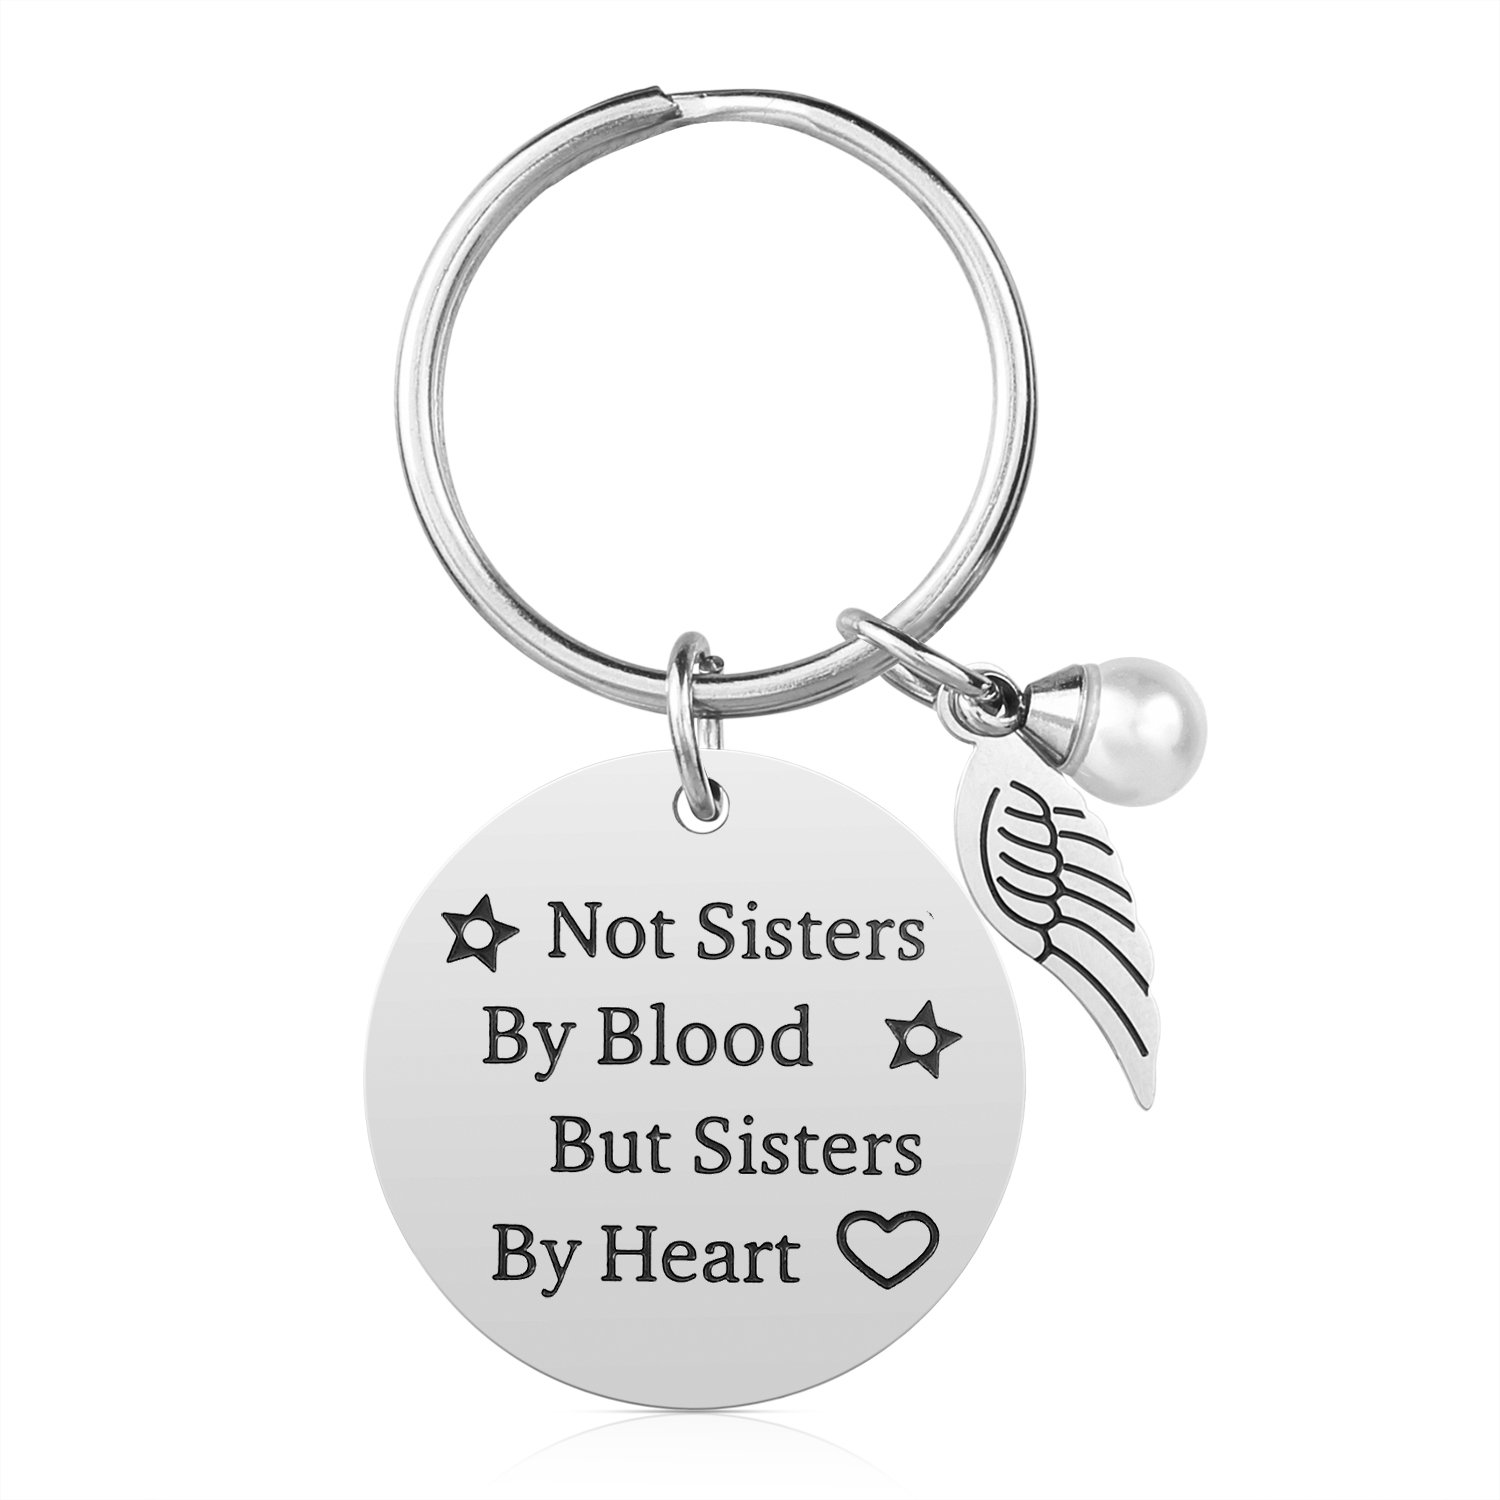 Amazon IJuqi Friendship Gift Keychain For Women Teens Girls Sisters Birthday Gifts Graduation Best Friend Office Products